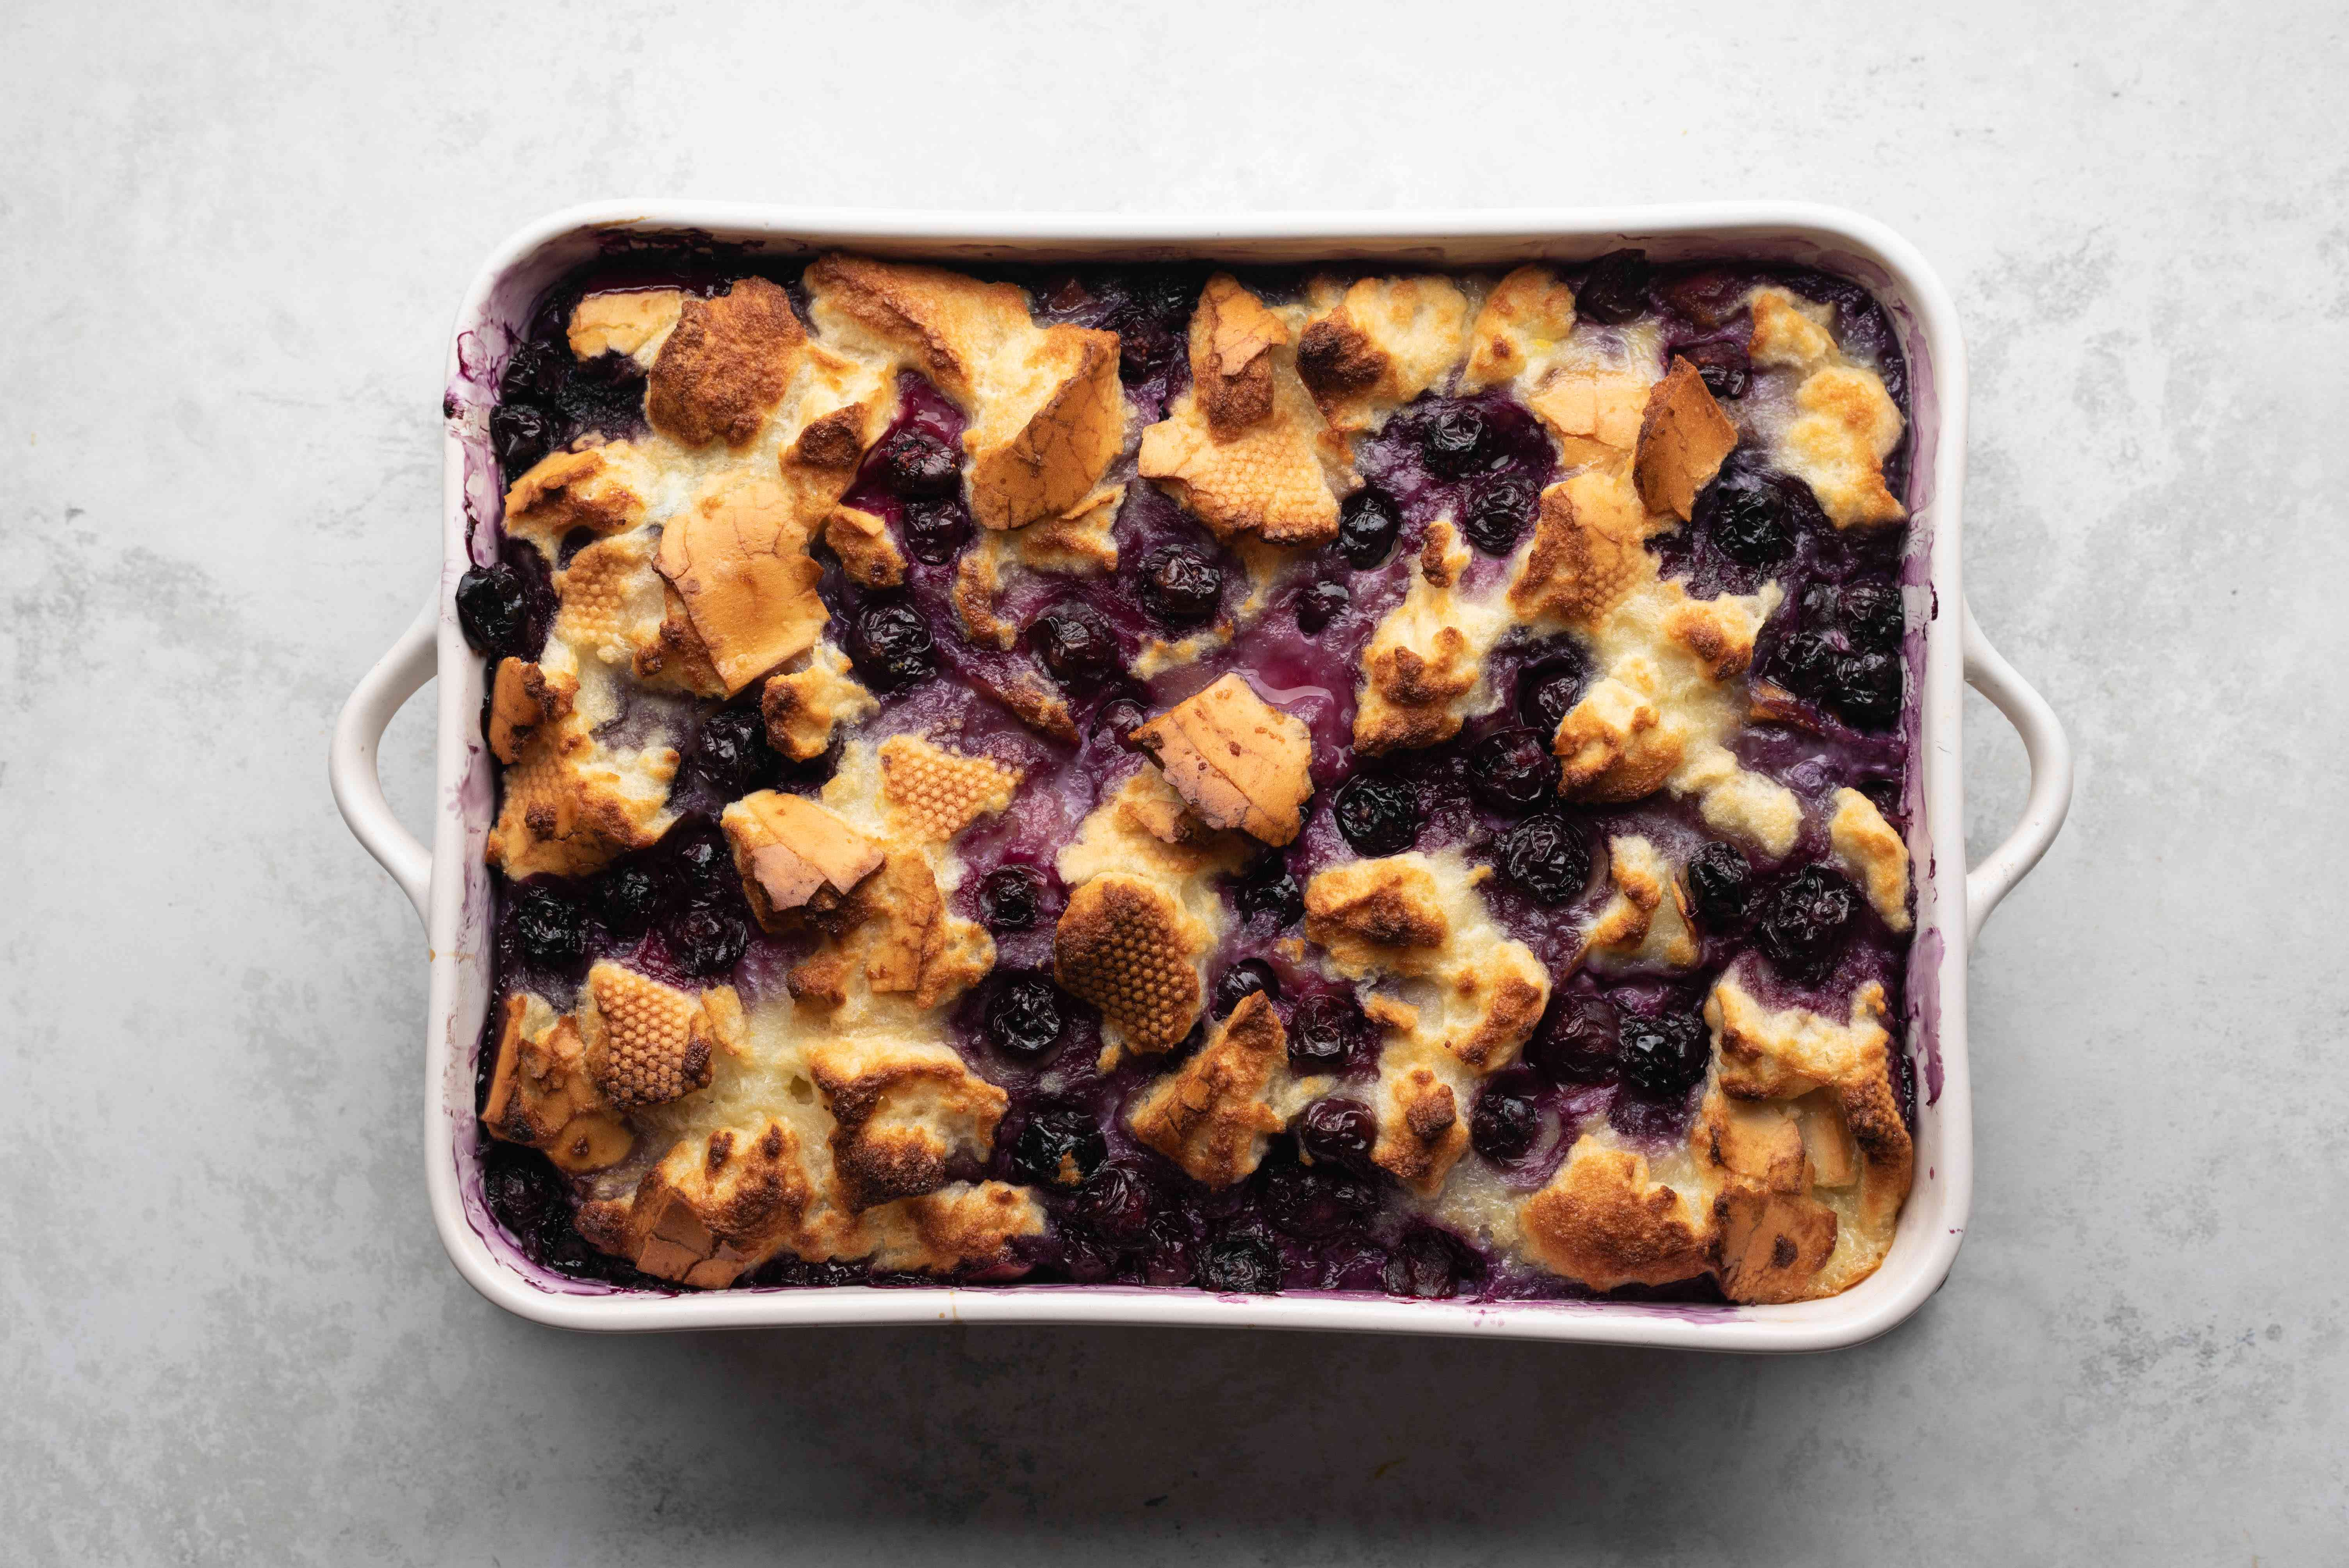 baked bread pudding in a baking dish